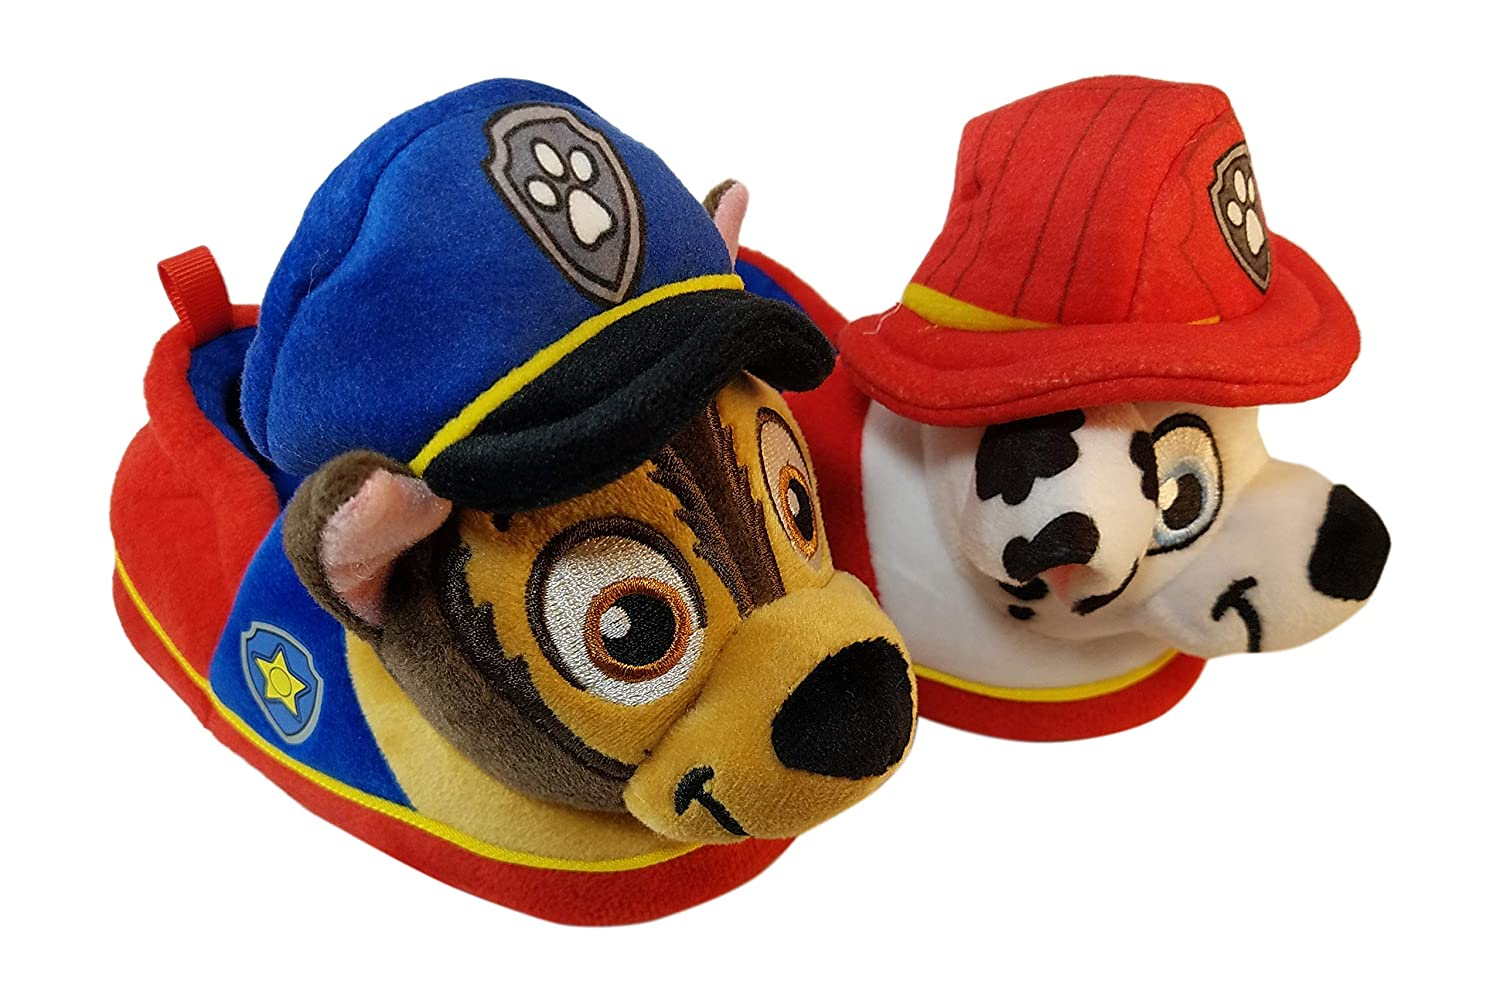 Paw Patrol Boys Slippers with Chase and Marshall